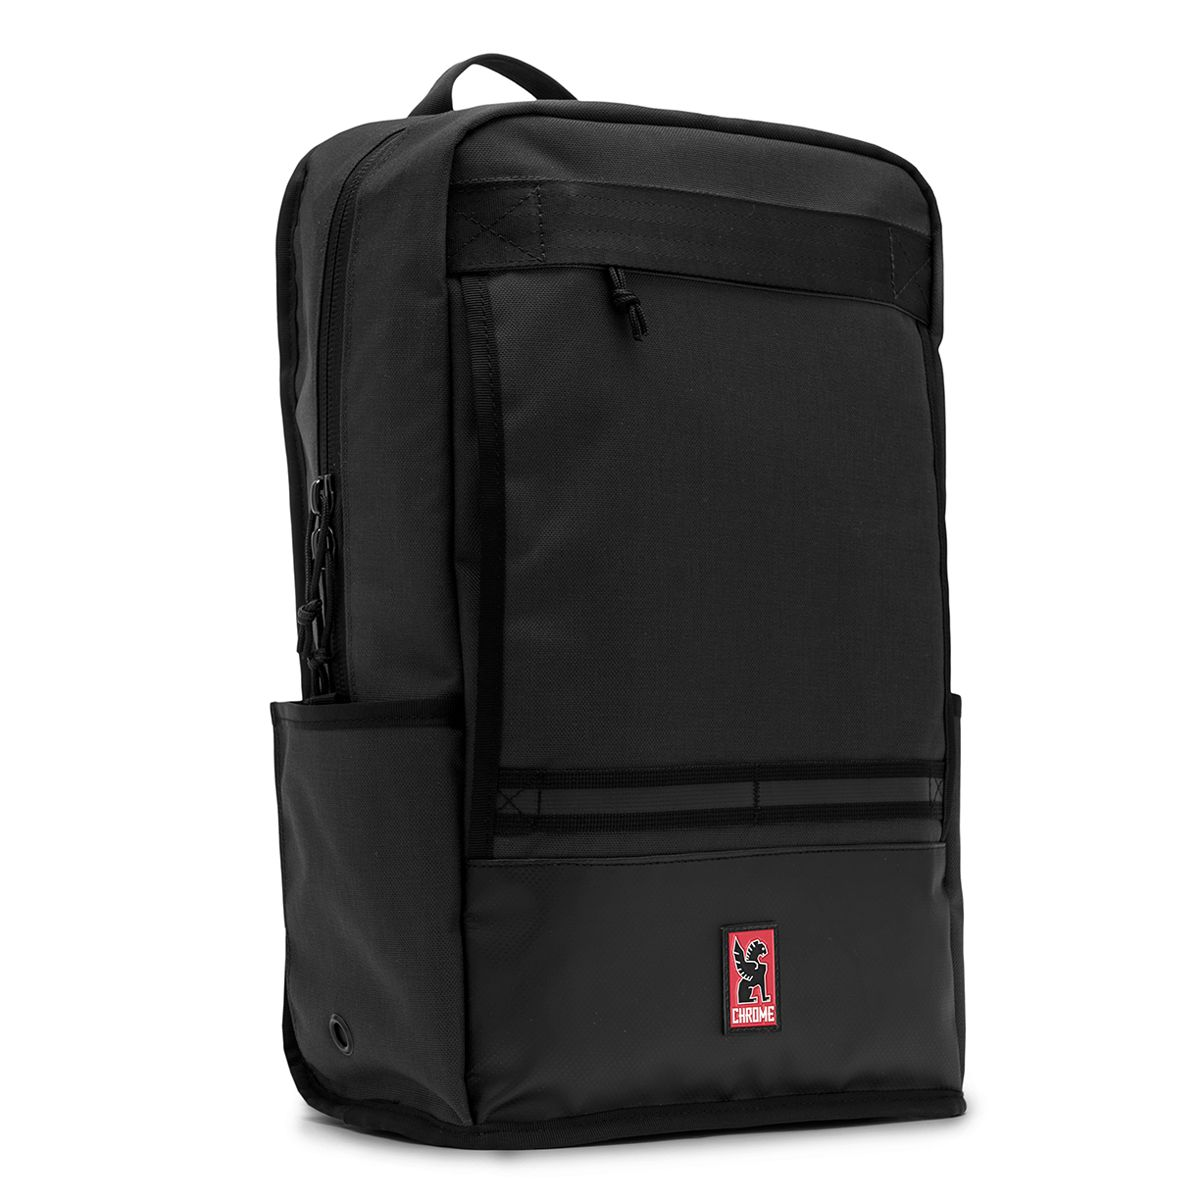 Hondo backpack